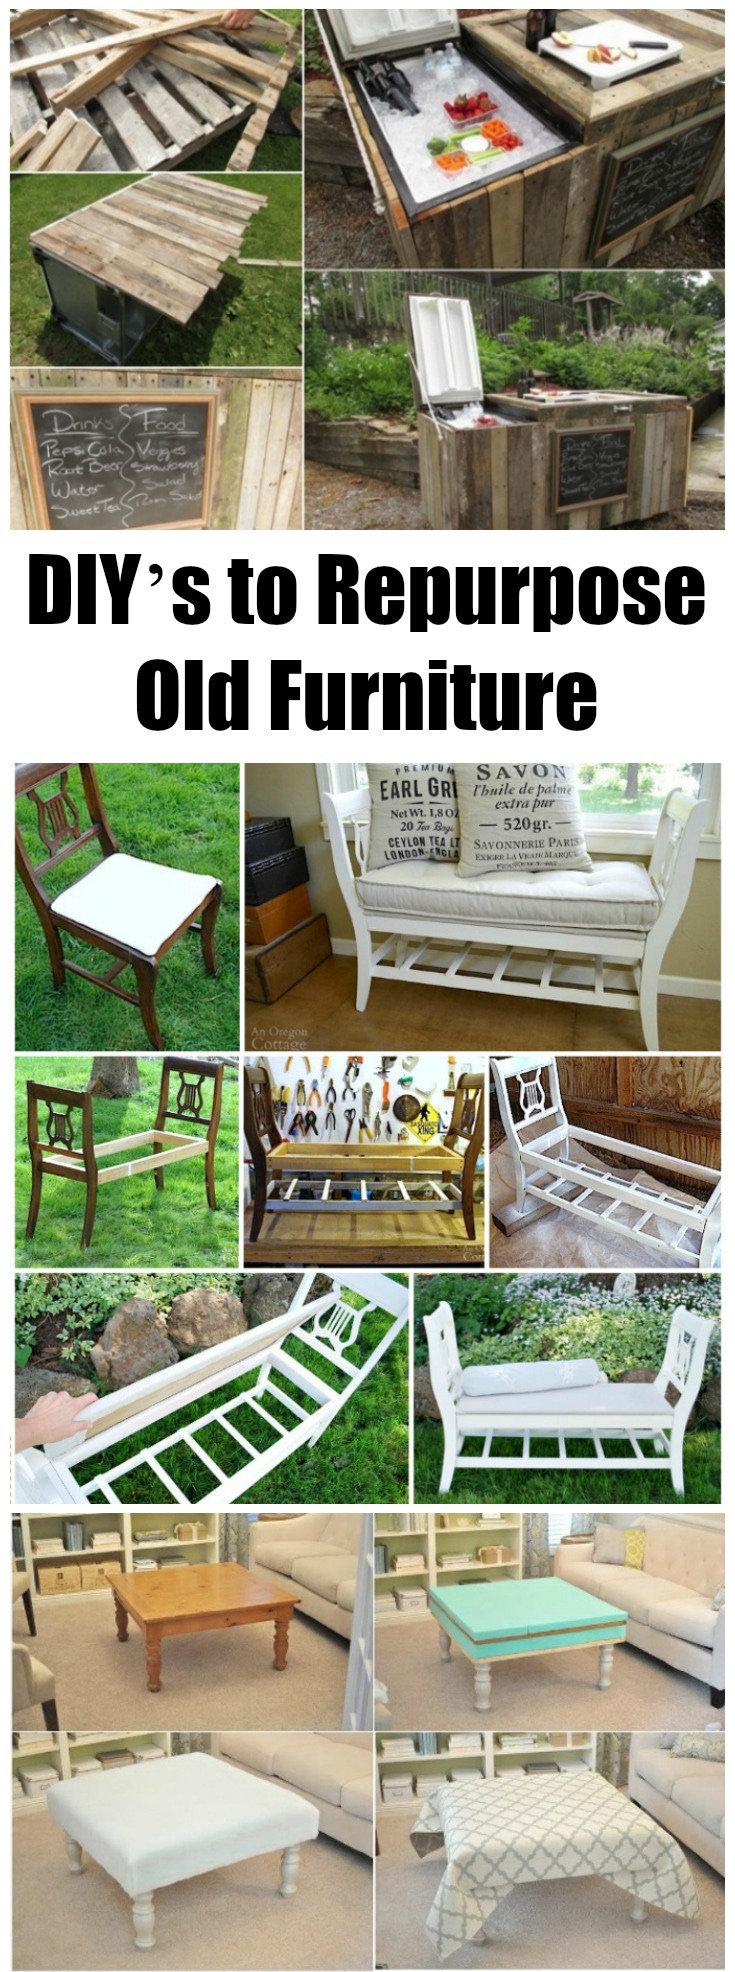 How To Repurpose Old Furniture 28 diy's to repurpose old furniture